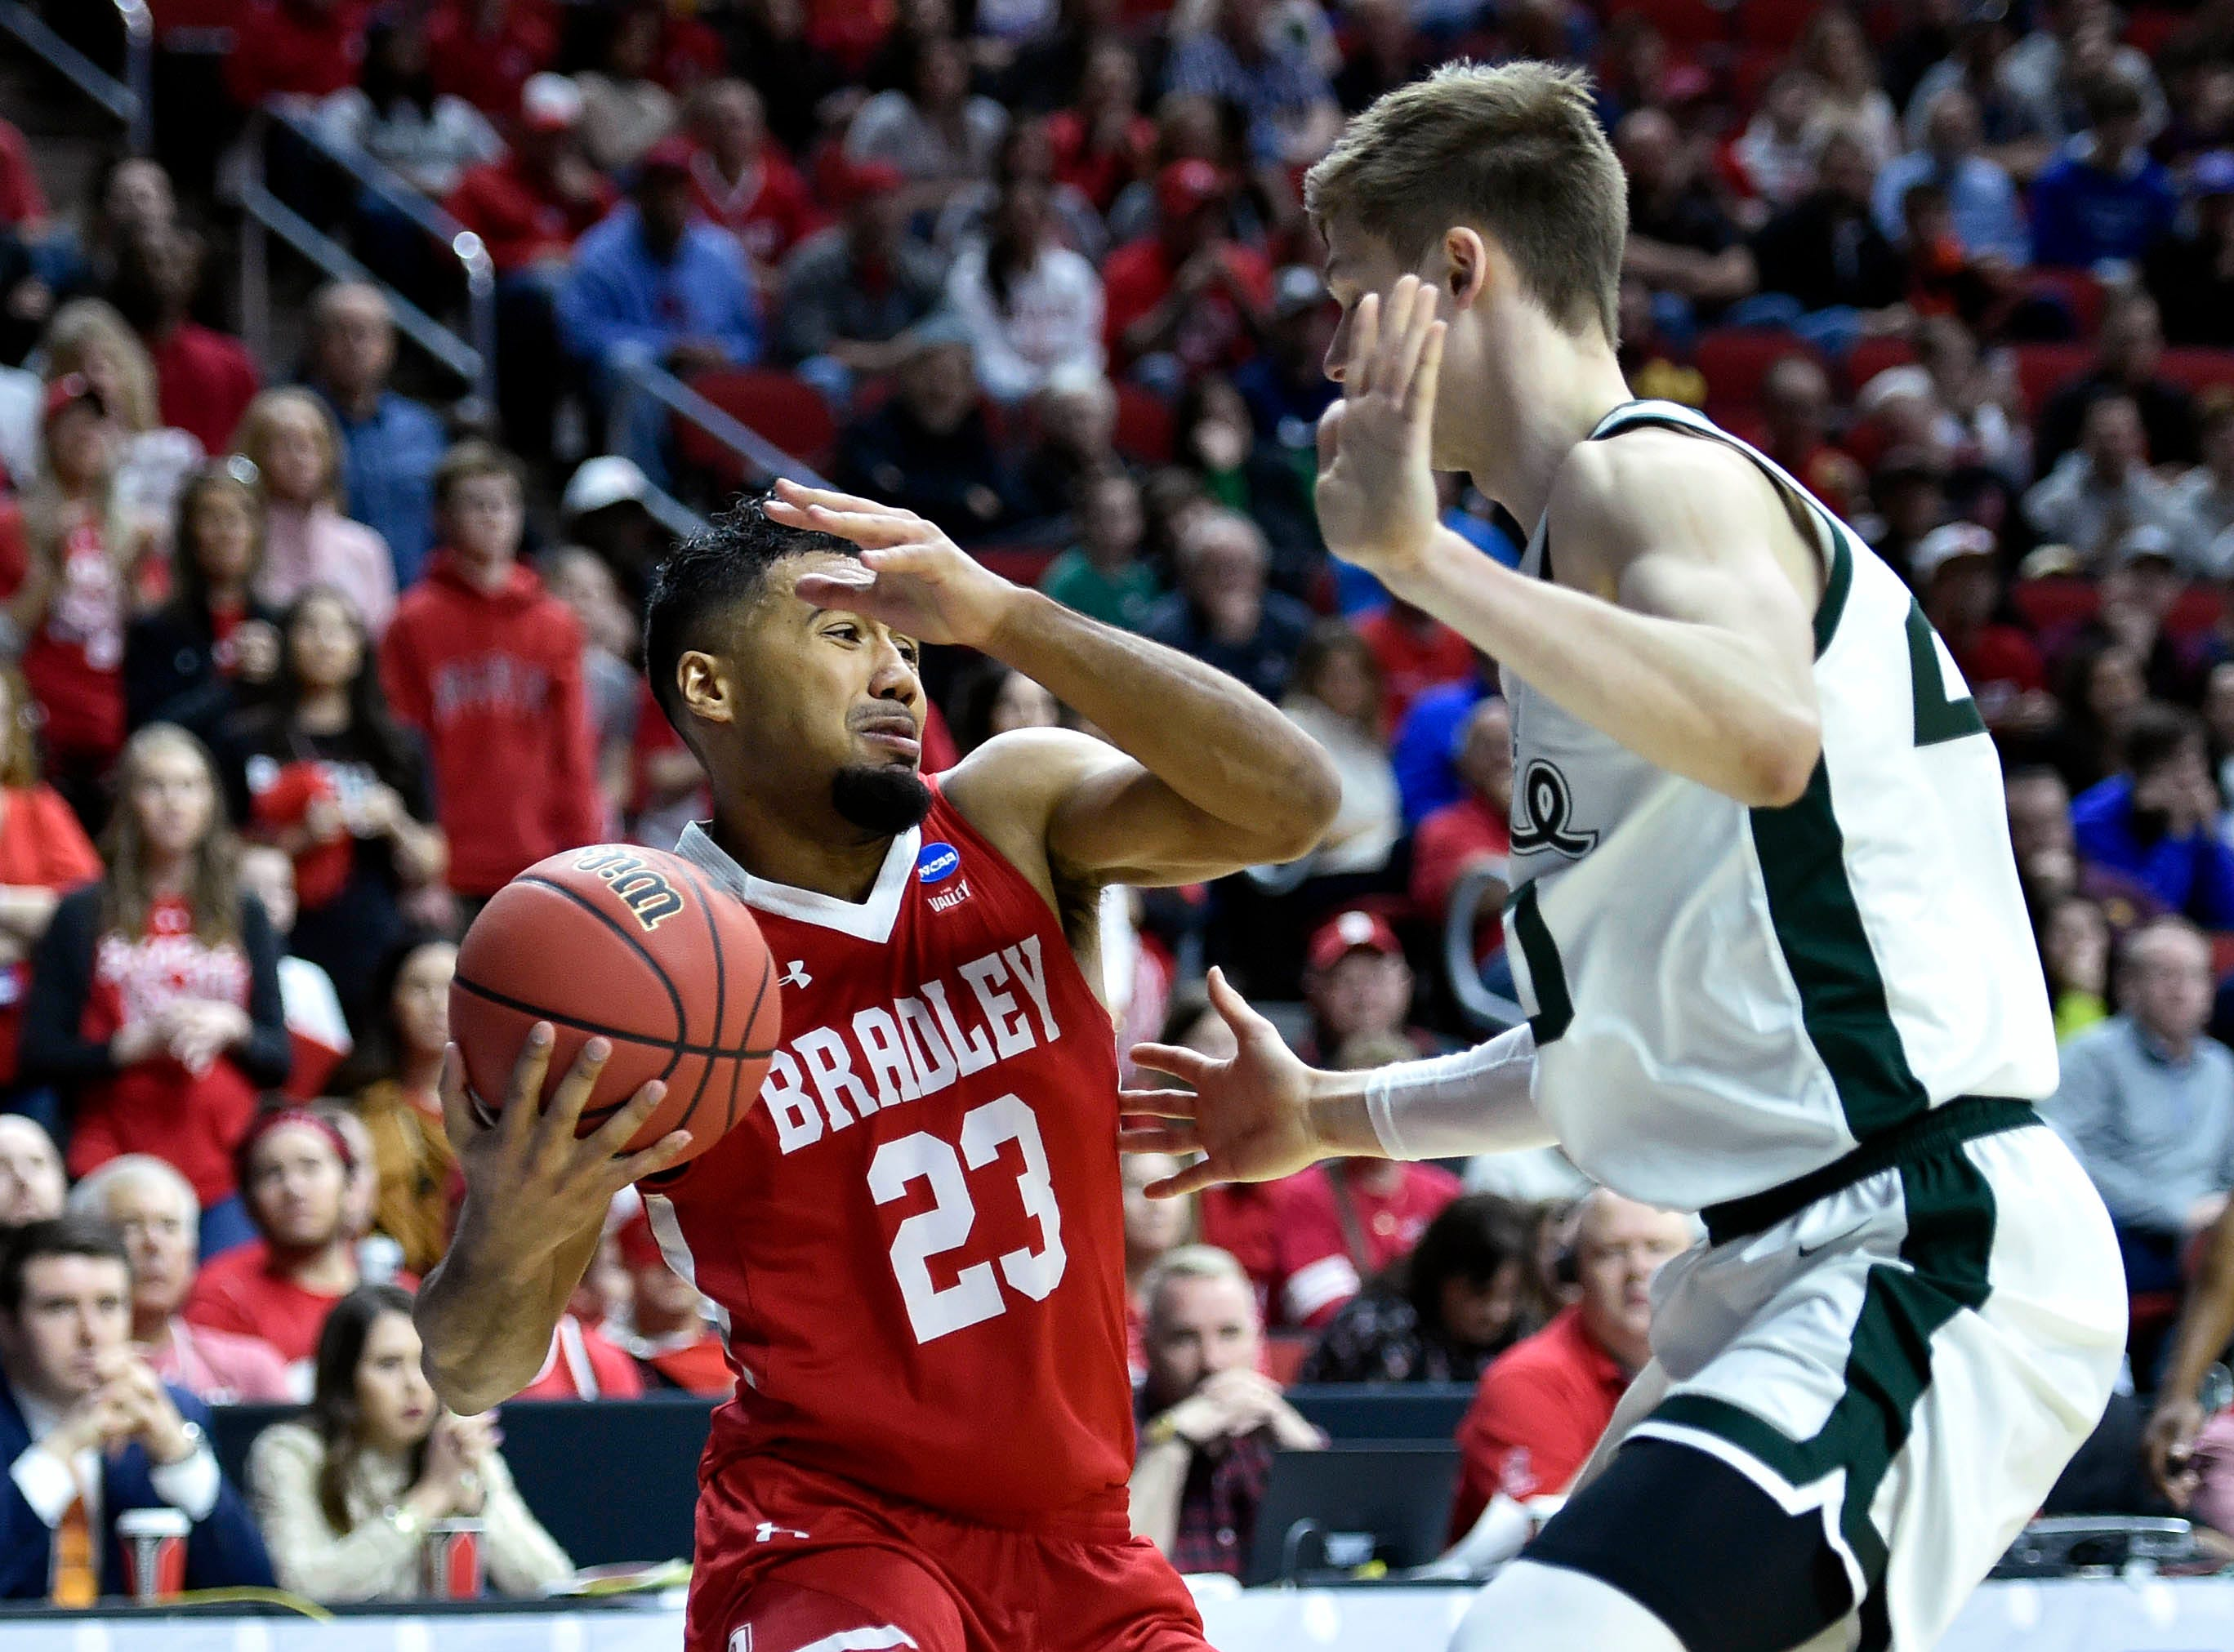 Bradley Braves guard Dwayne Lautier-Ogunleye (23) drives to the basket against Michigan State Spartans guard Matt McQuaid (20) during the second half in the first round of the 2019 NCAA Tournament at Wells Fargo Arena.